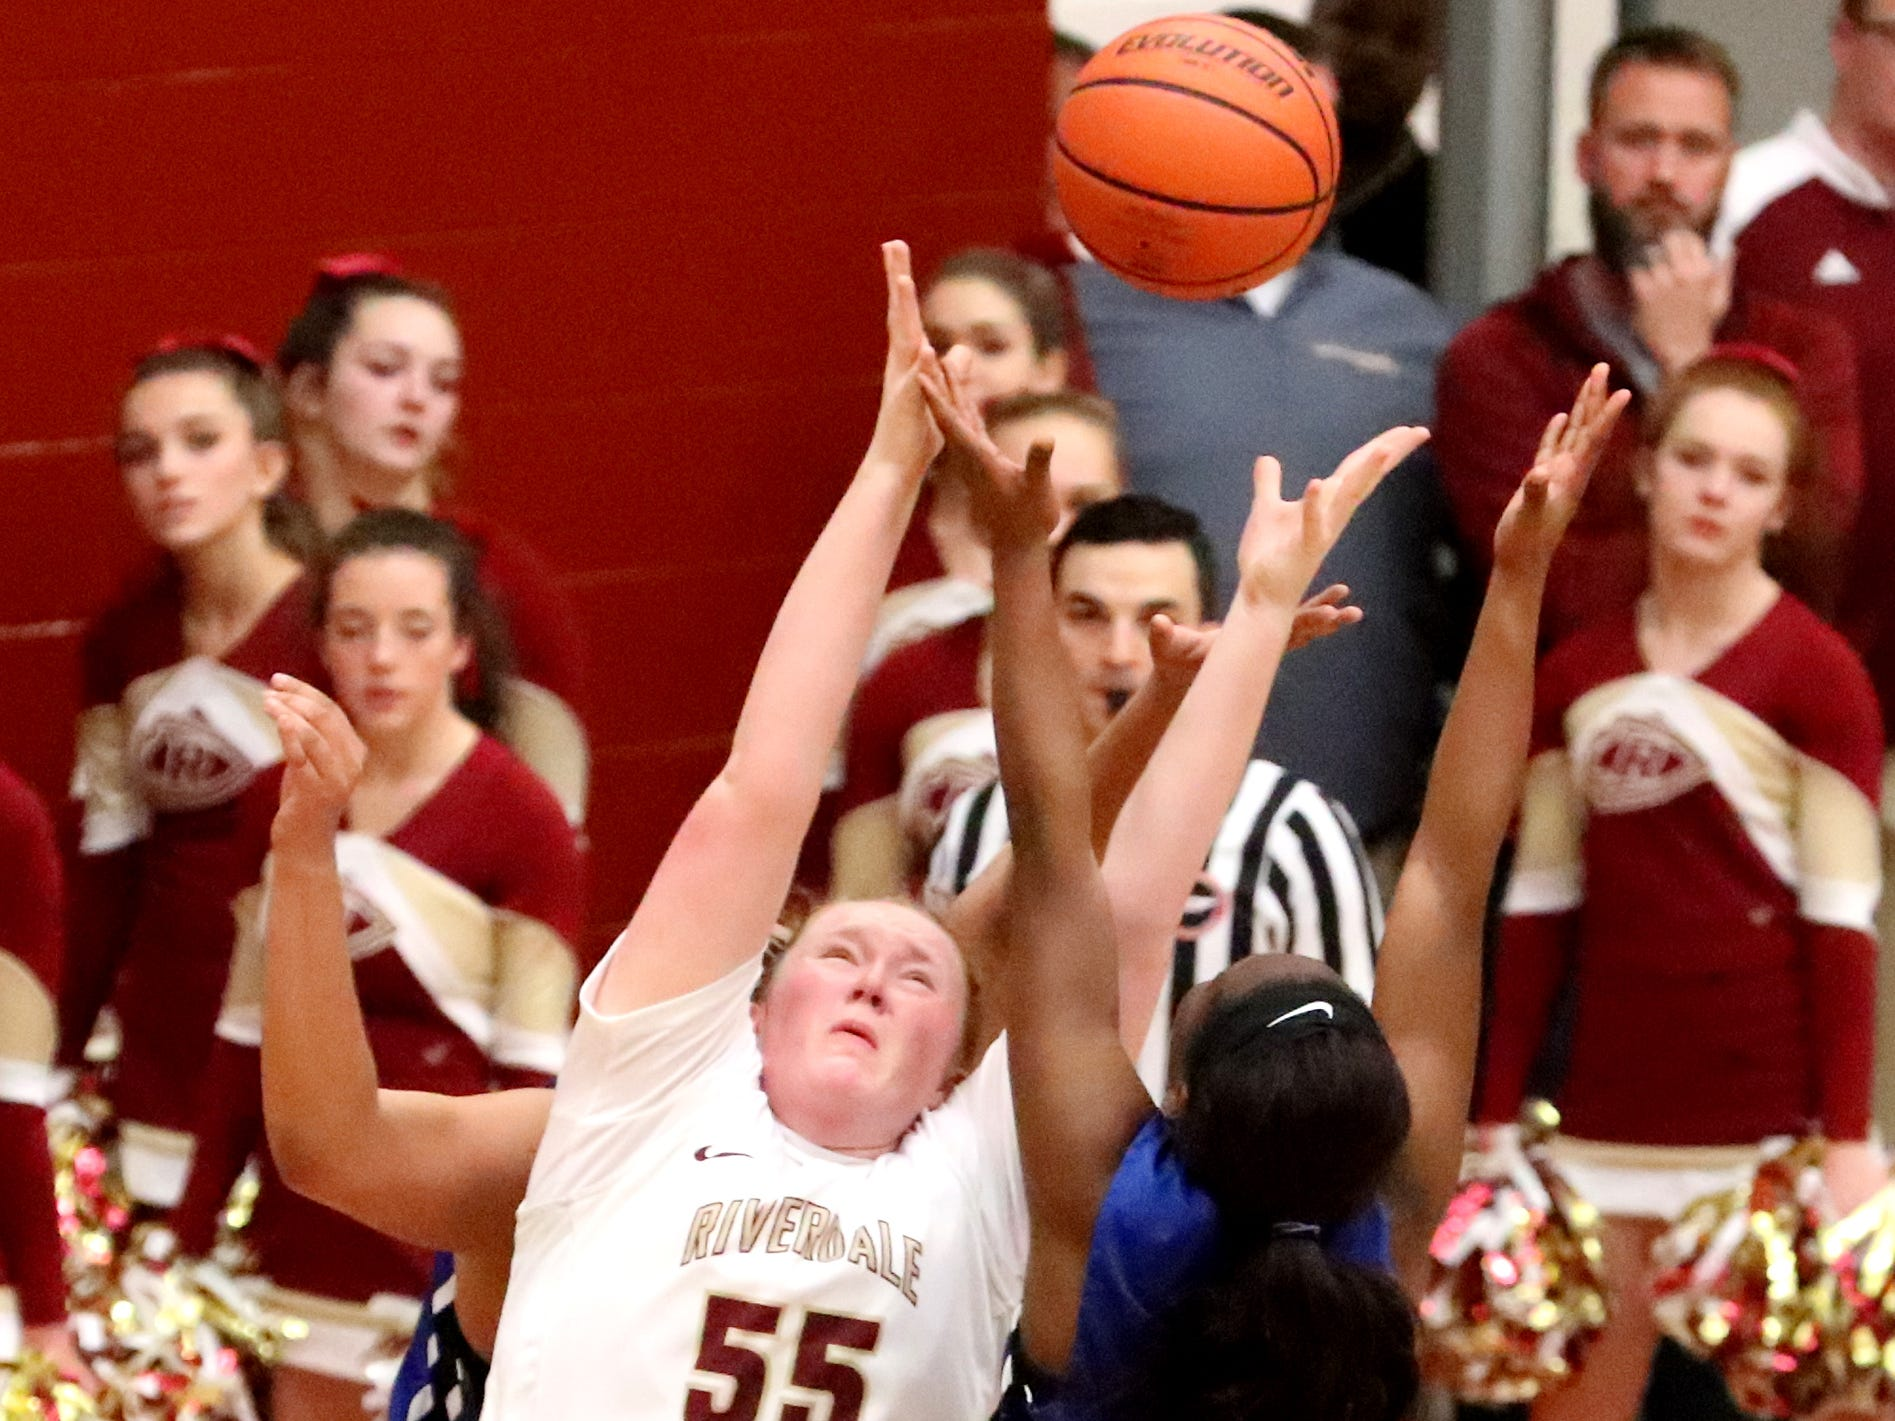 RiverdaleÕs Katelyn Worely (55) and Lebanon's  Jakeshia James (5) both go after a rebound during the game  on Friday, Nov. 30, 2018.